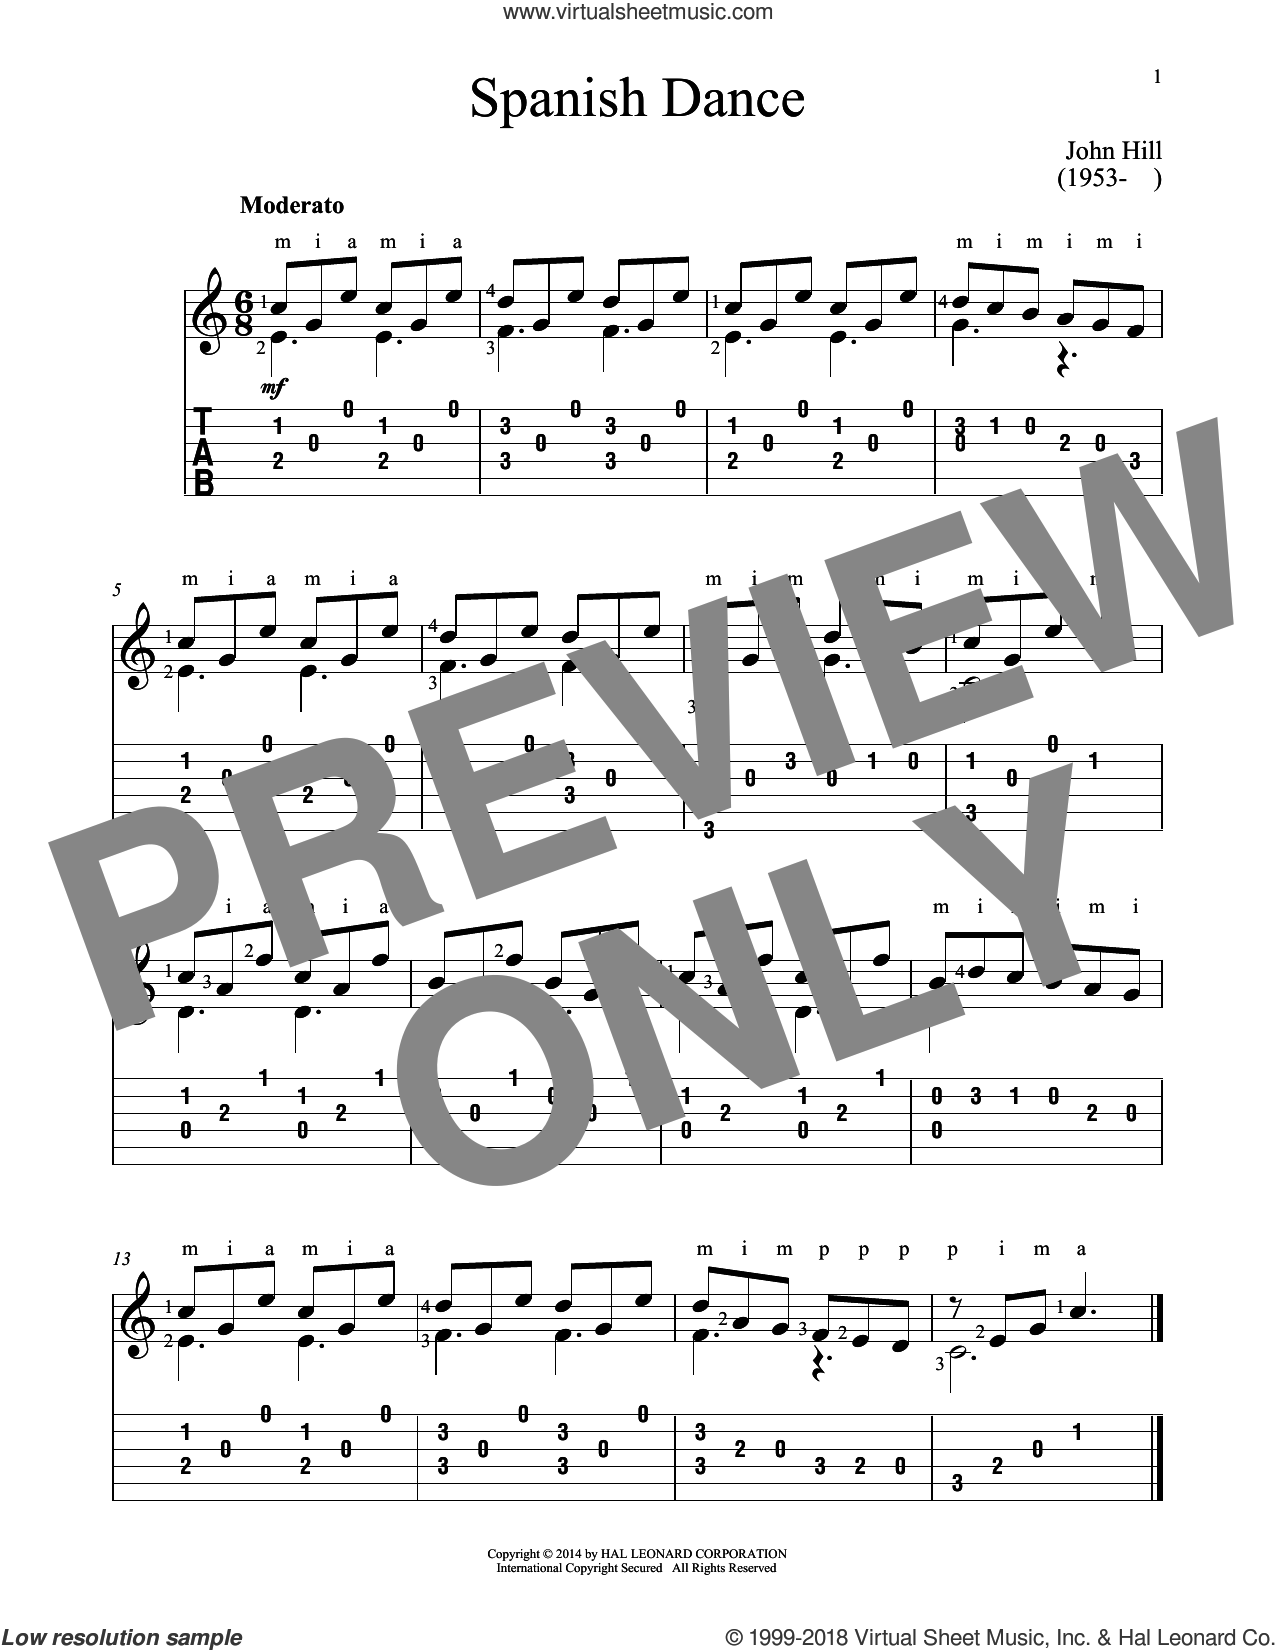 Spanish Dance sheet music for guitar solo by John Hill